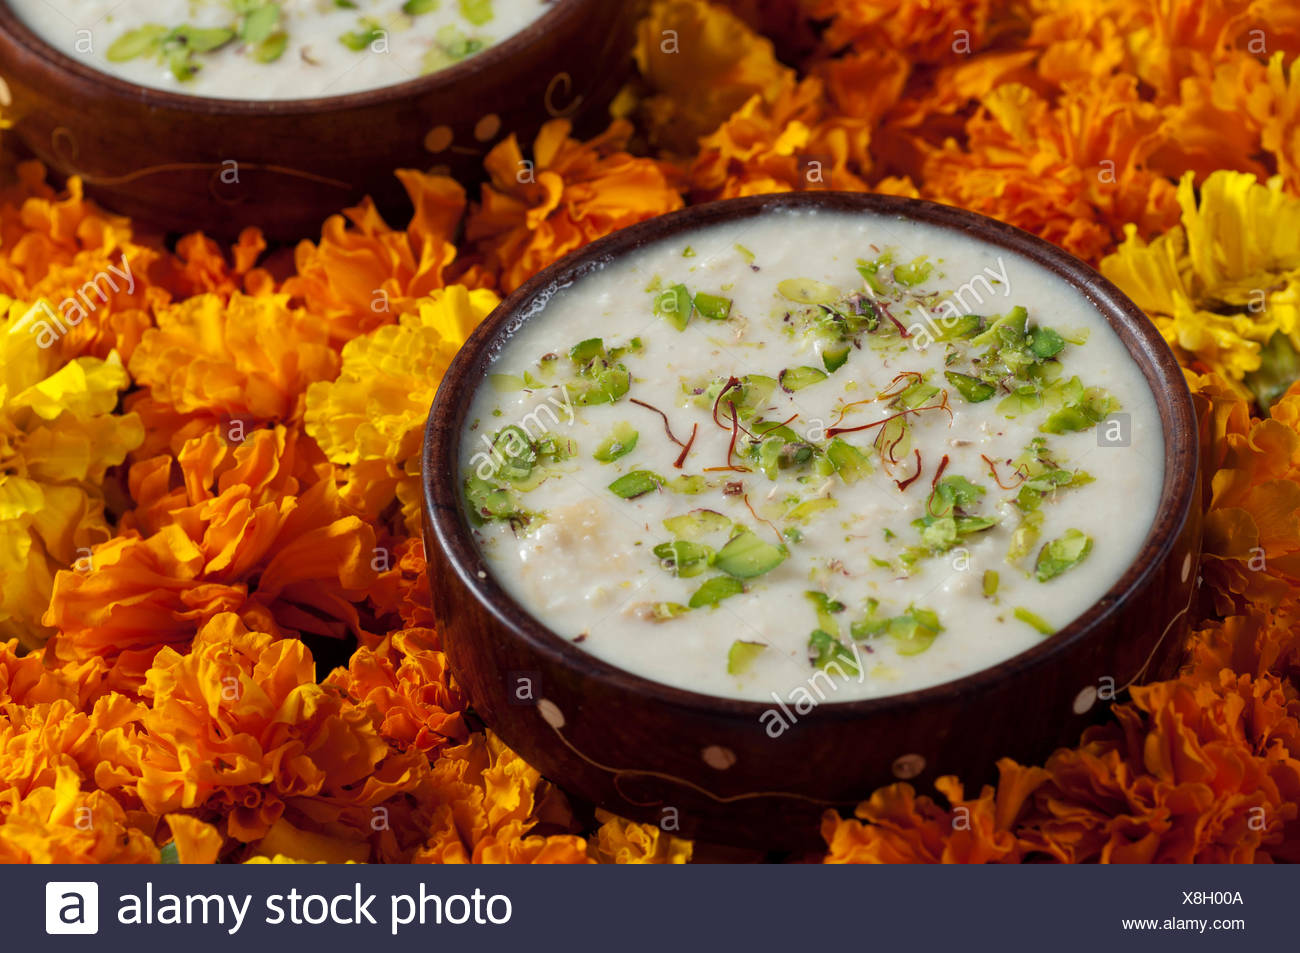 Rabri in a bowl - Stock Image